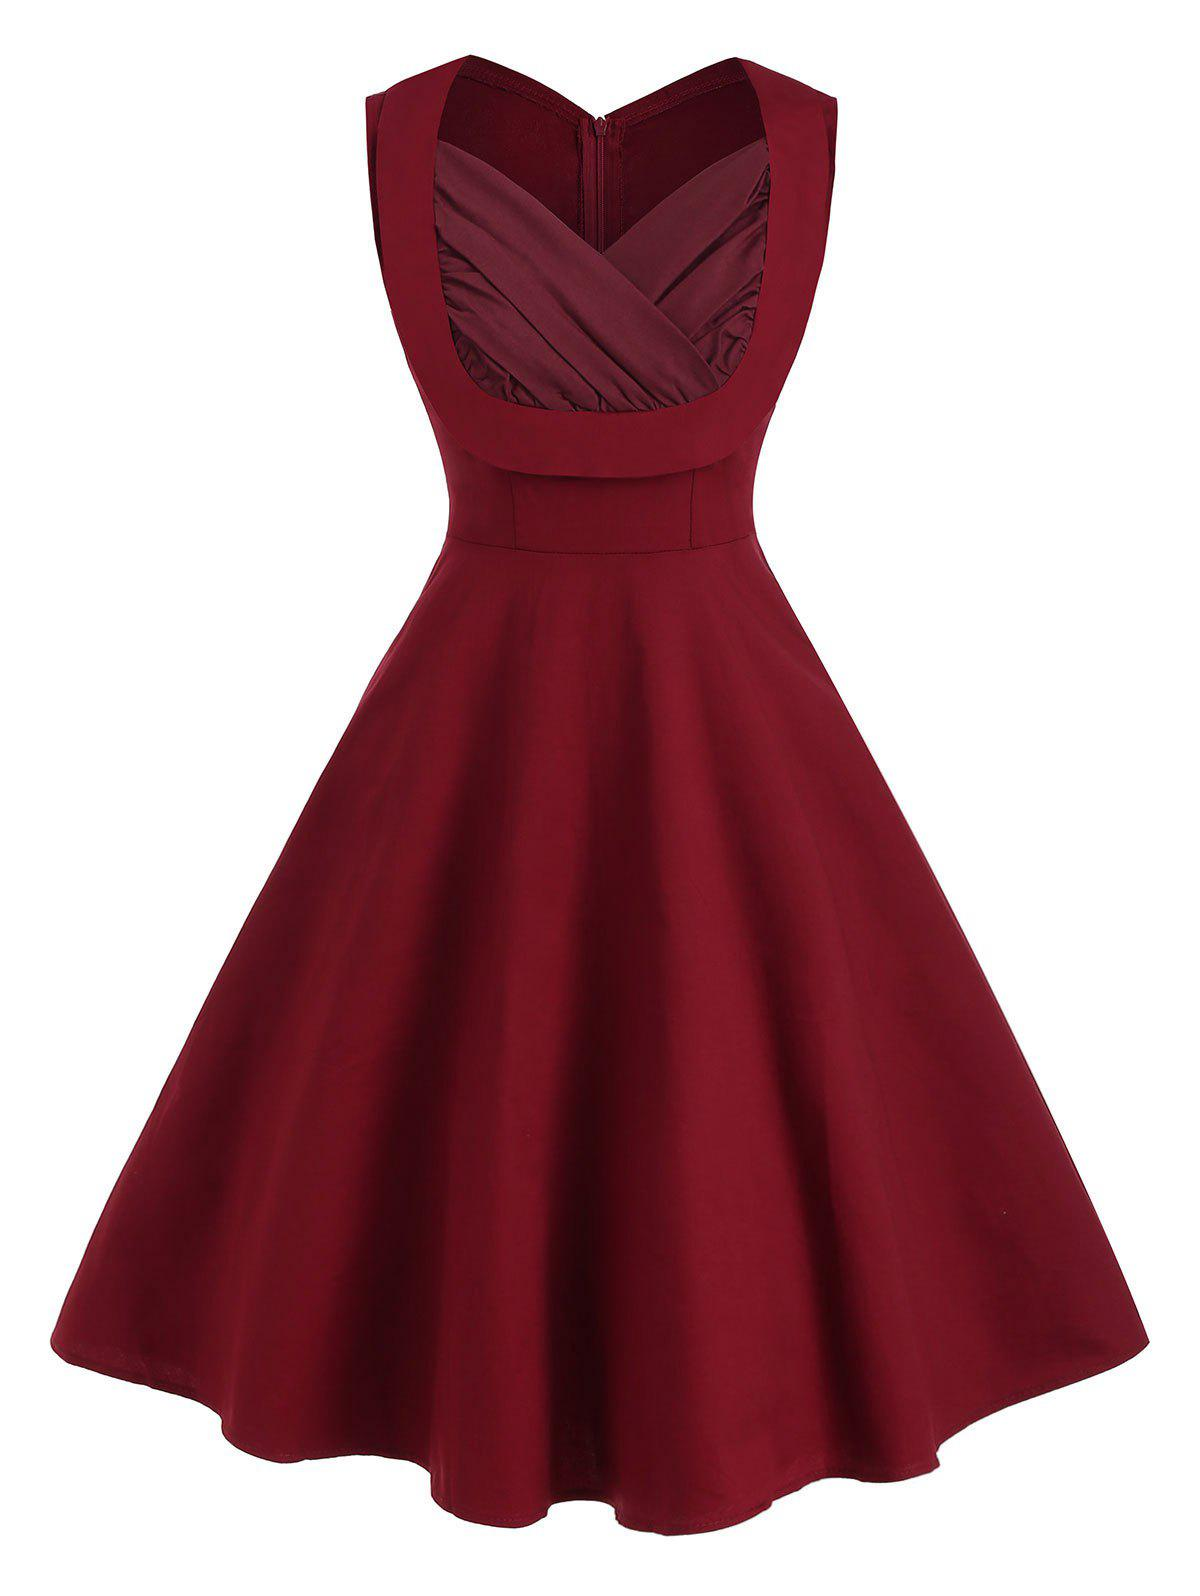 Sweetheart Neck Ruched A Line Sleeveless Vintage Dress фото